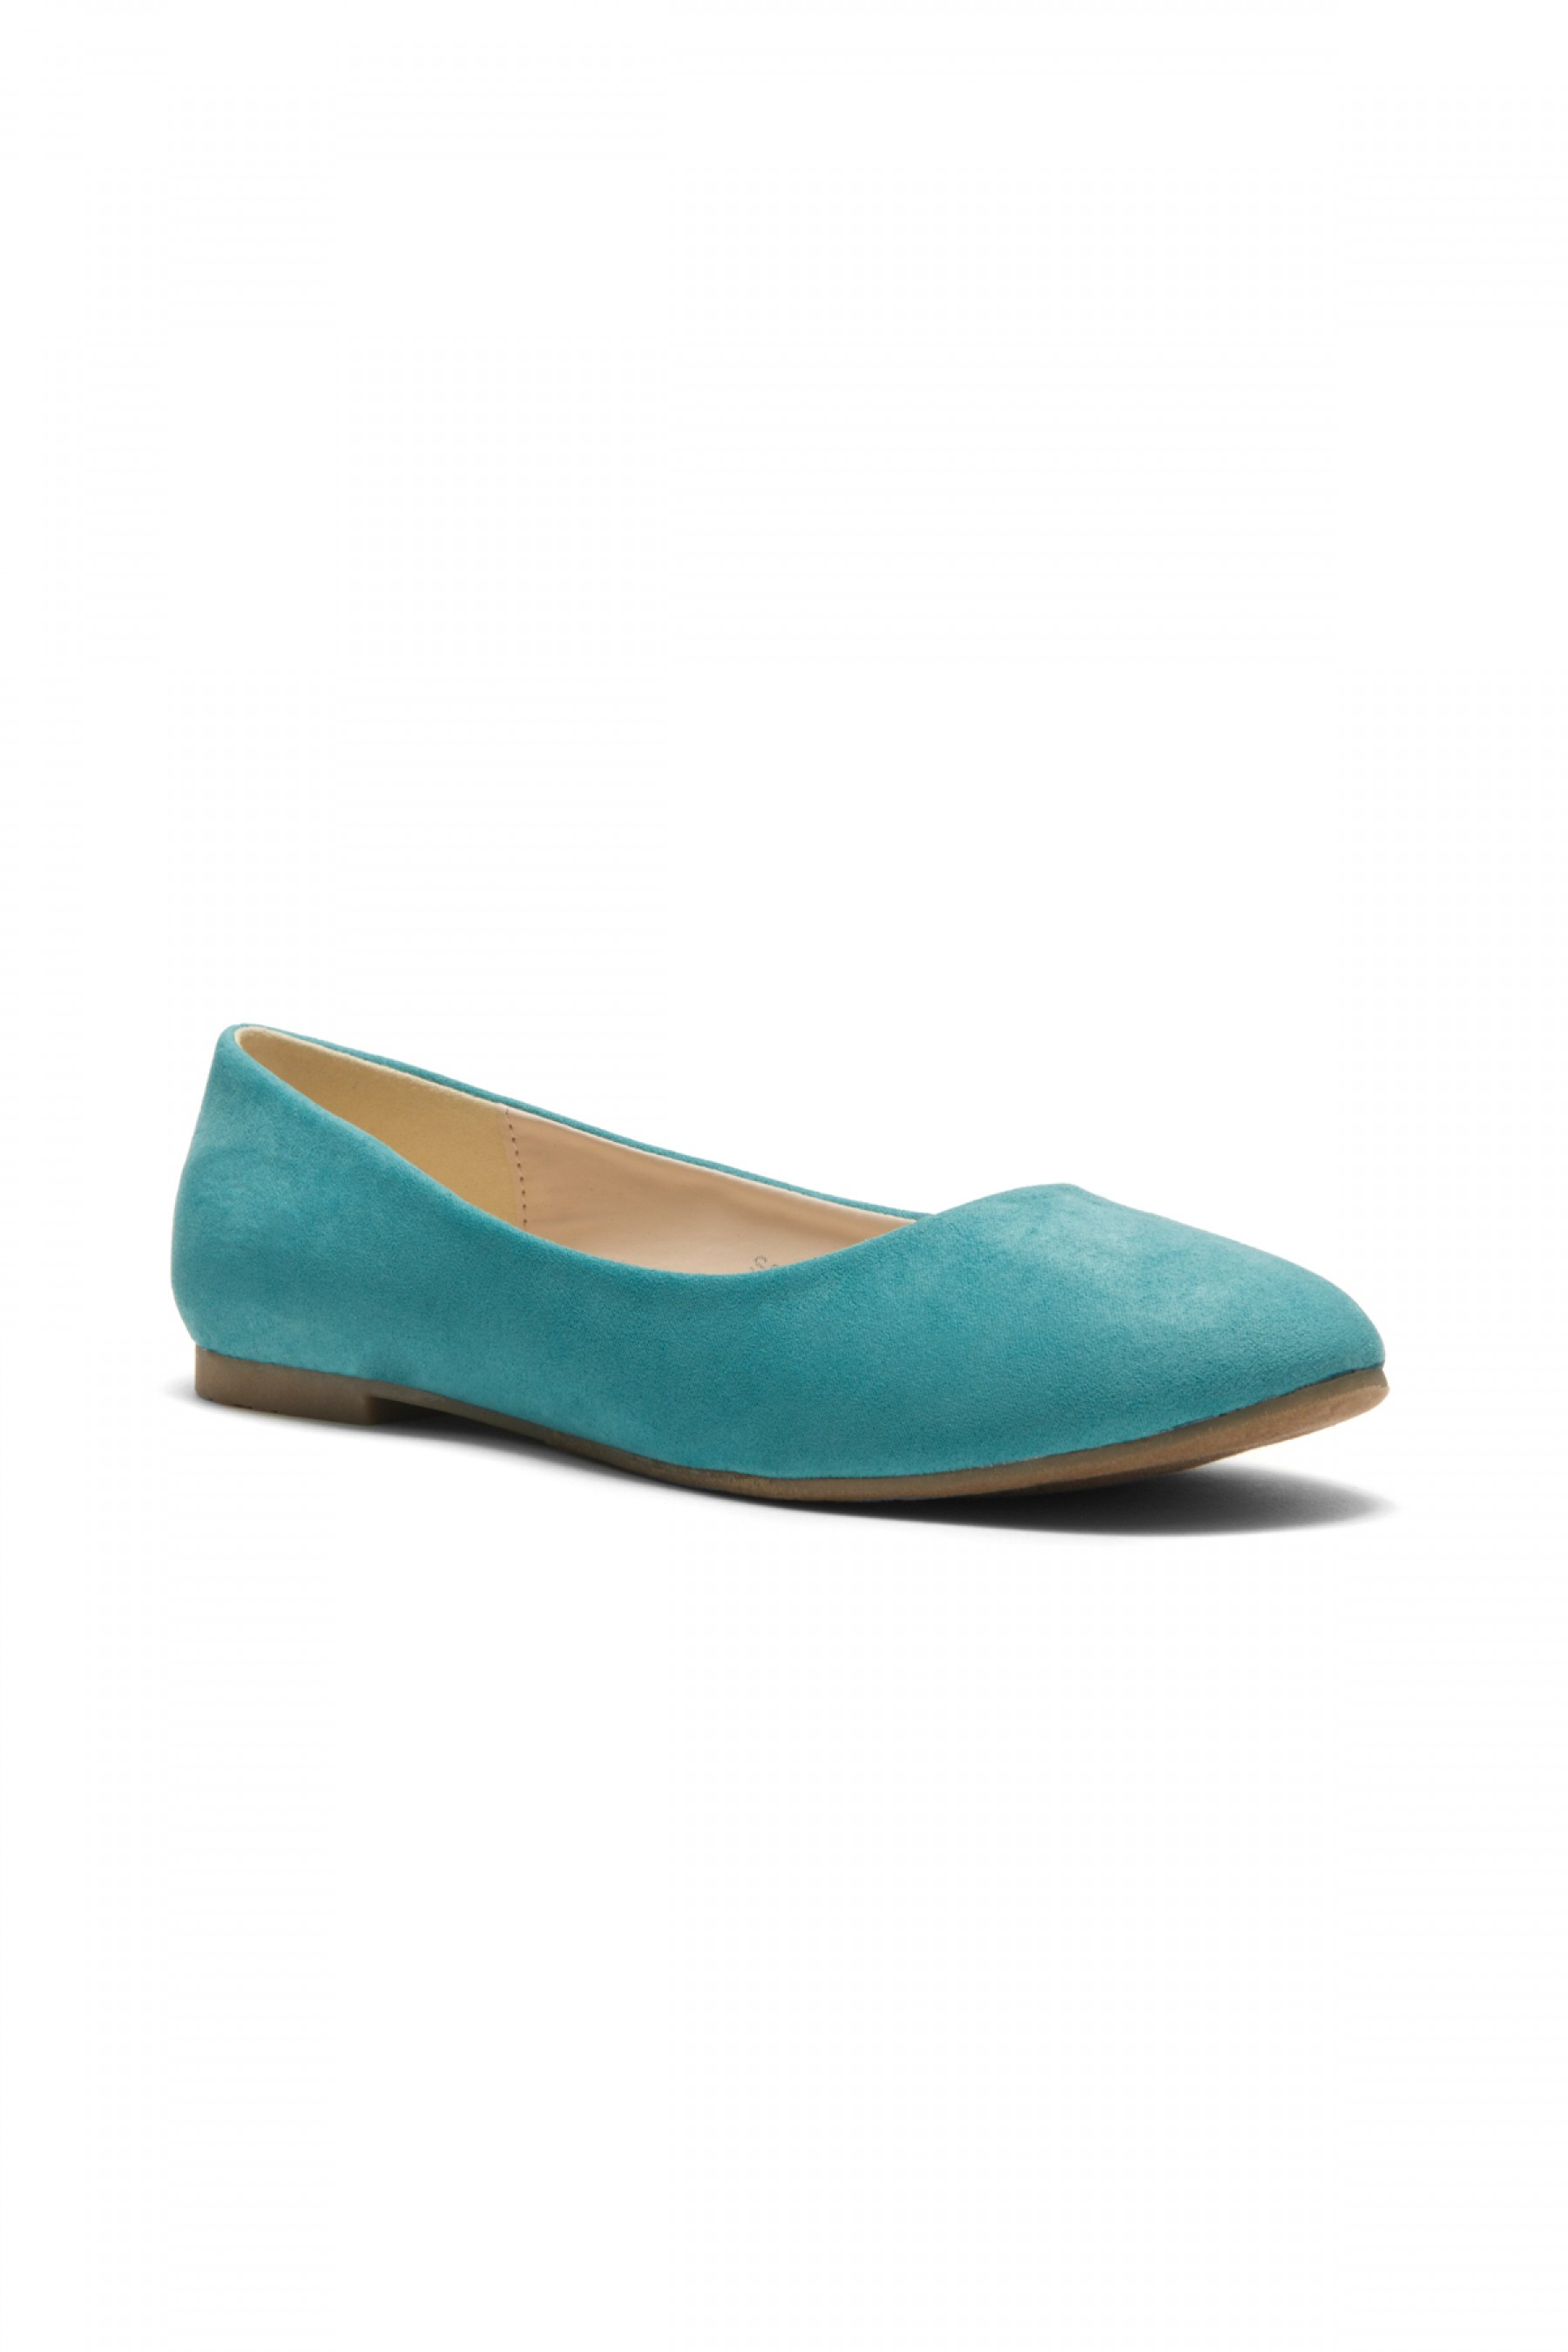 HerStyle Women's Manmade Sammba Colorful Ballet Flat (Teal)